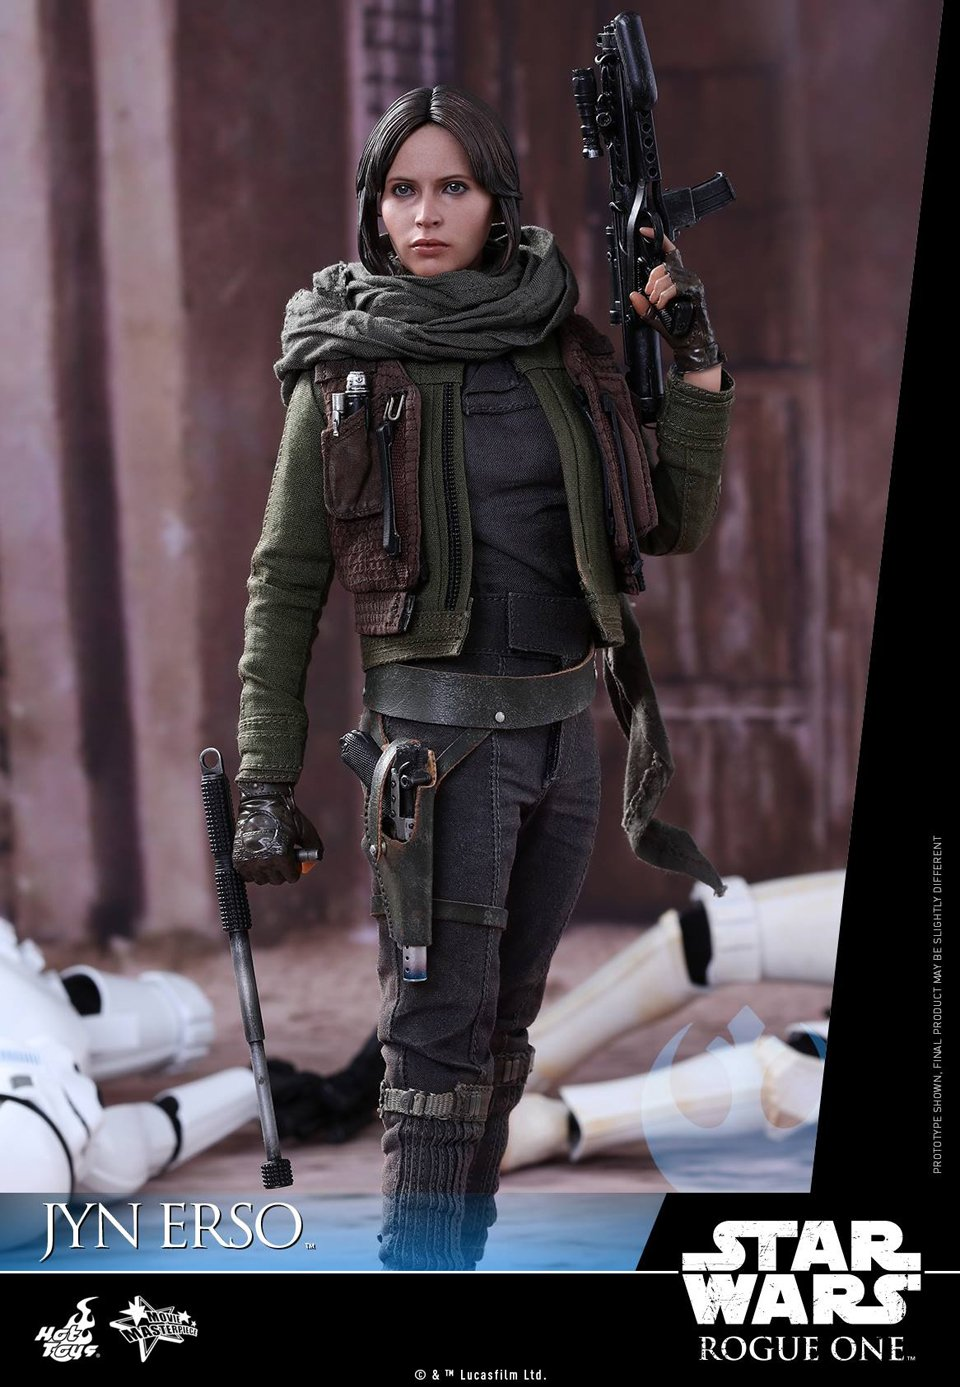 Hot Toys Jyn Erso Action Figure